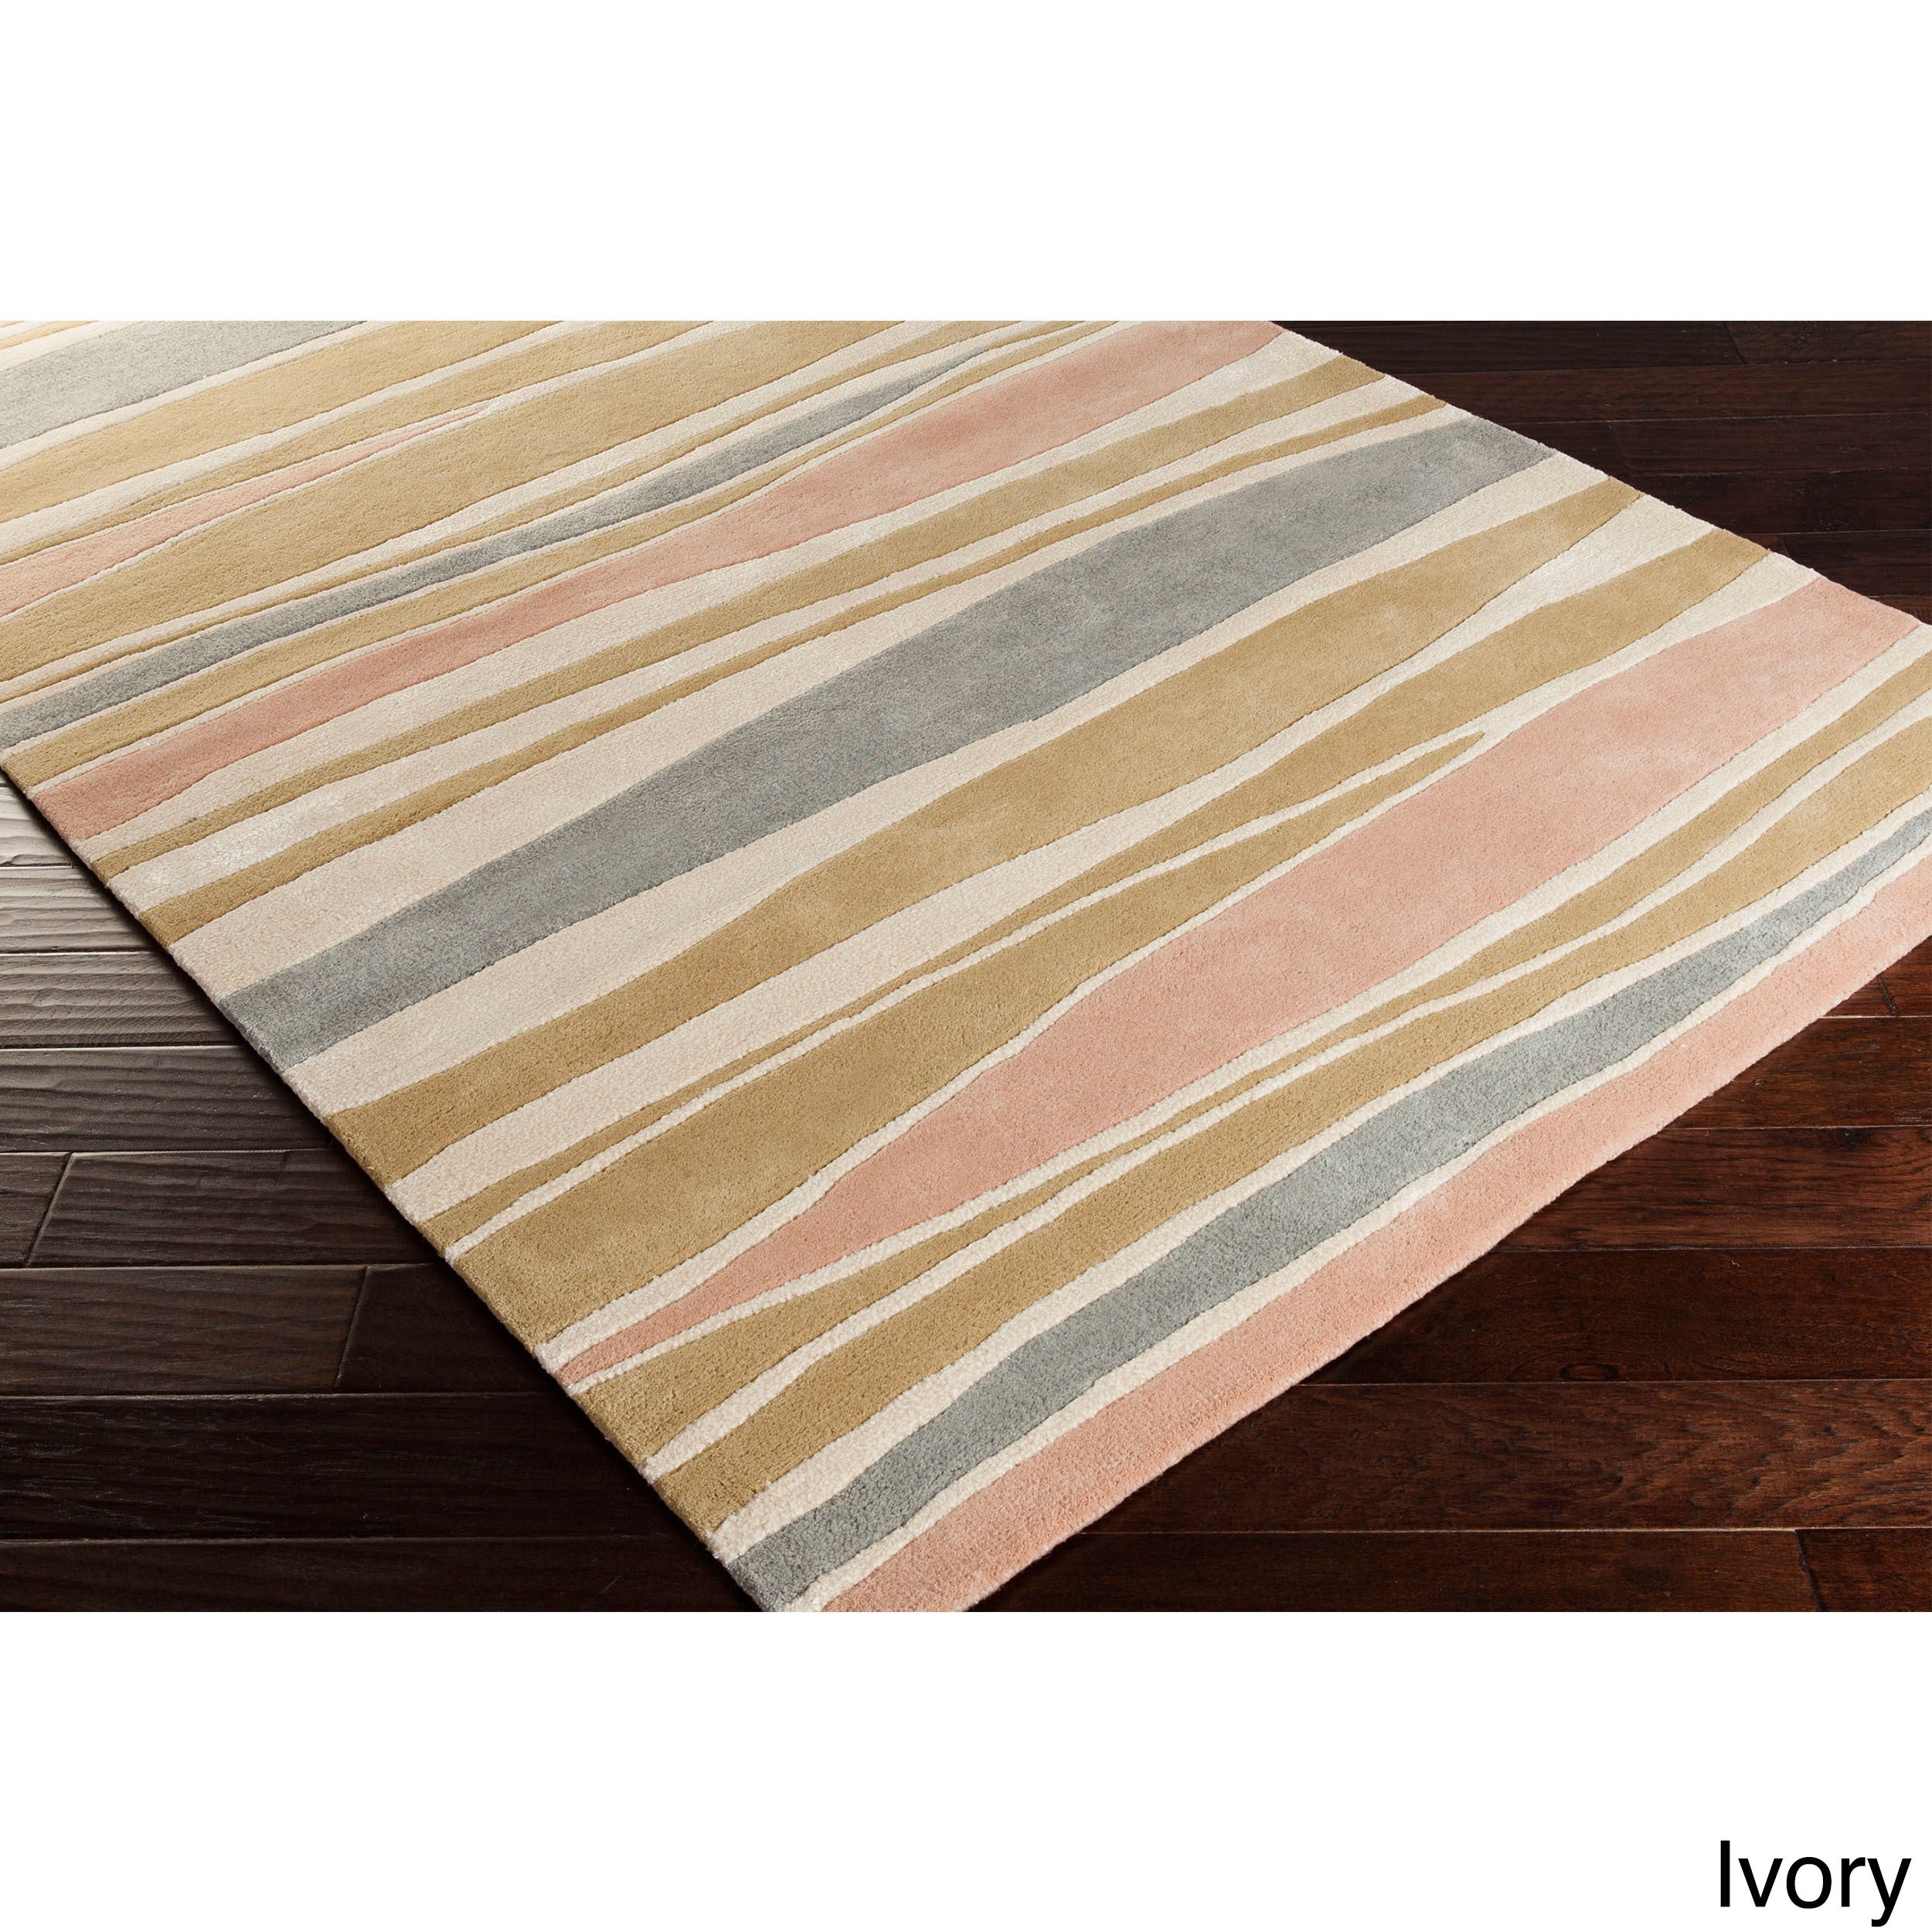 Cordelia Striped Wool Accent Rug (2' x 3')